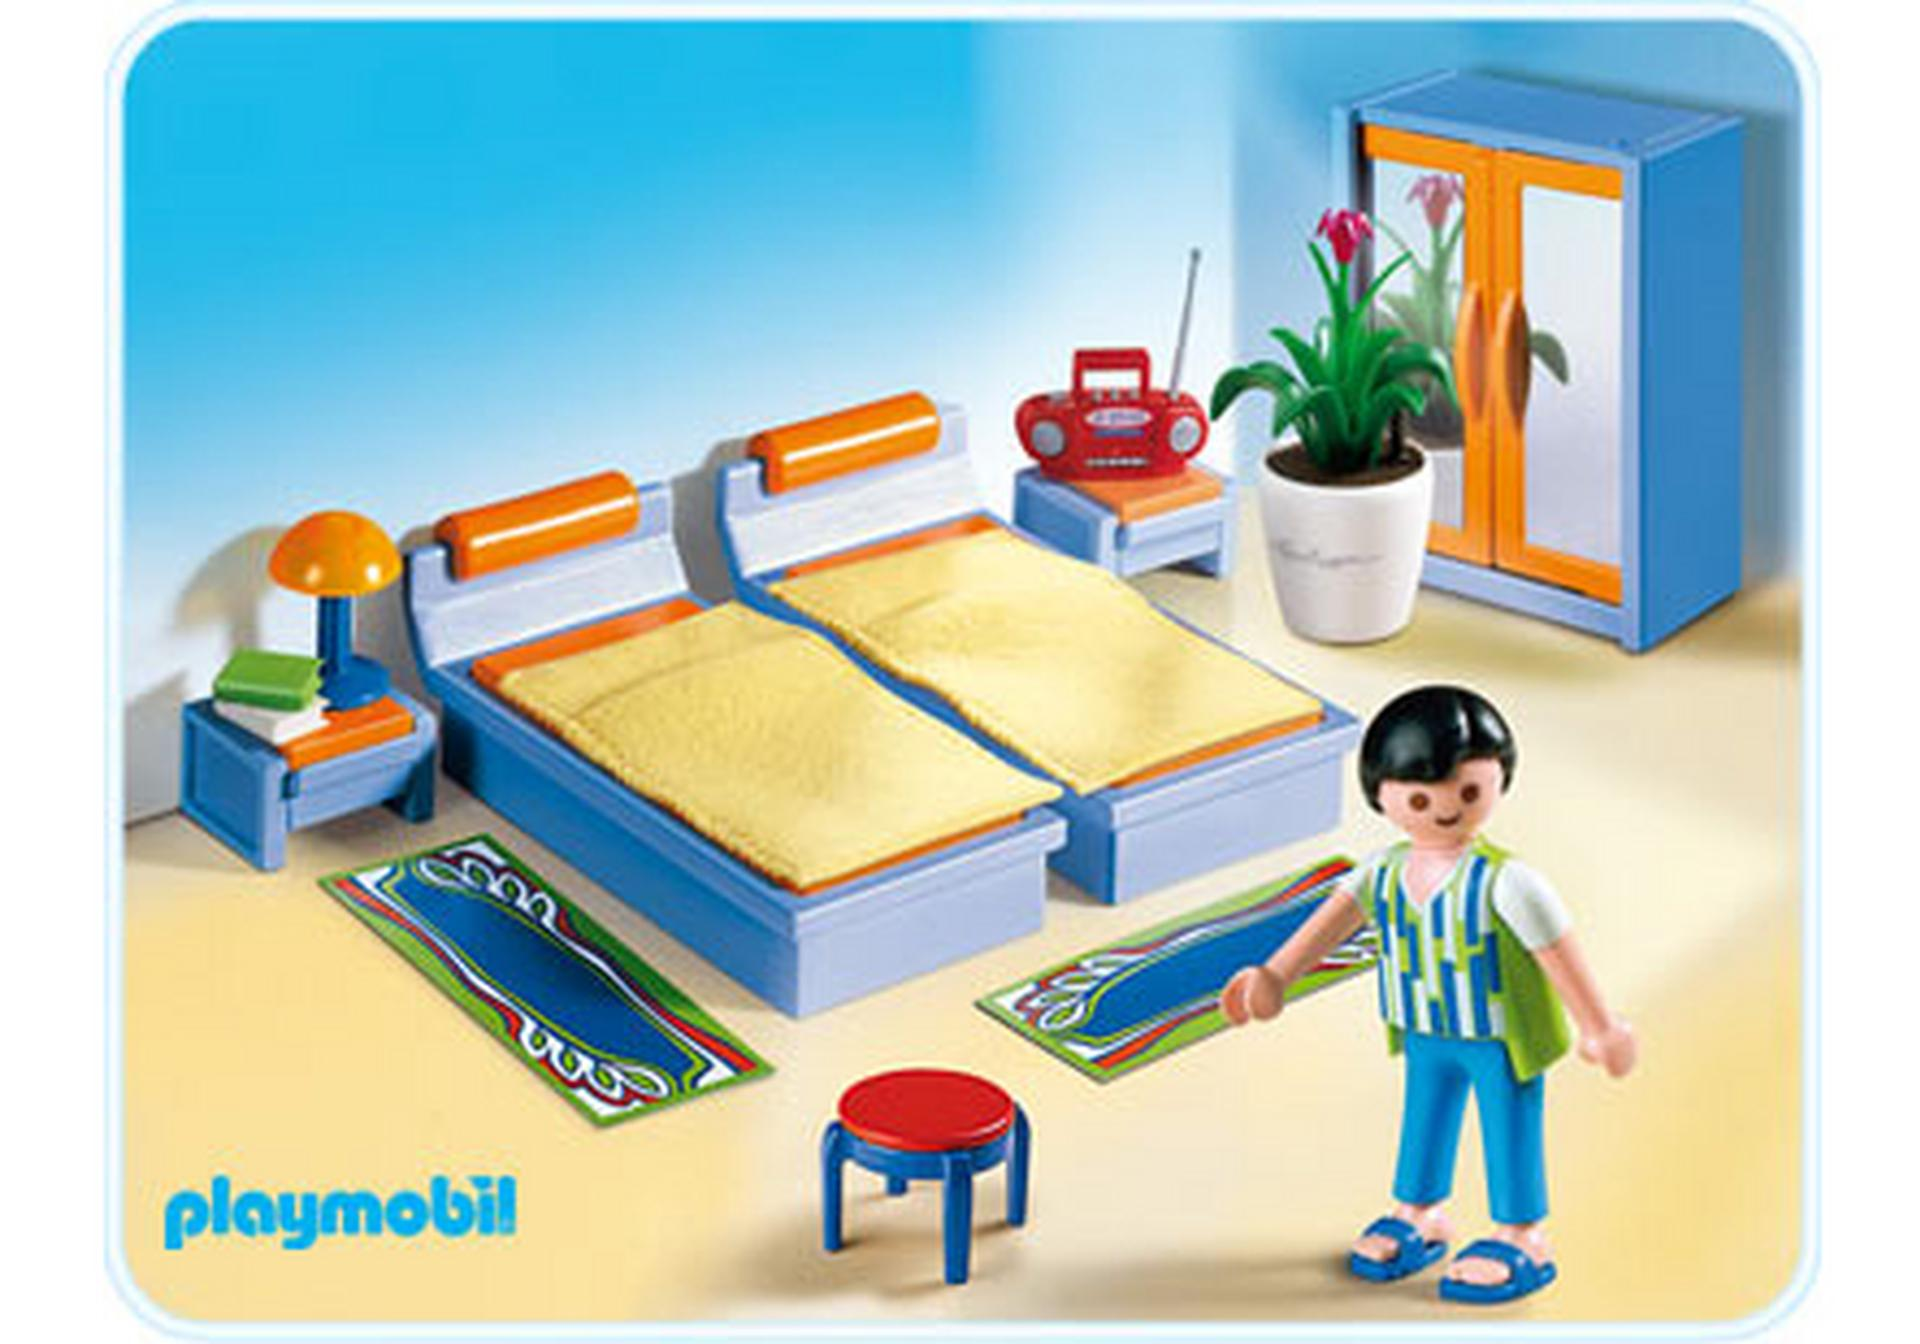 chambre des parents 4284 a playmobil france